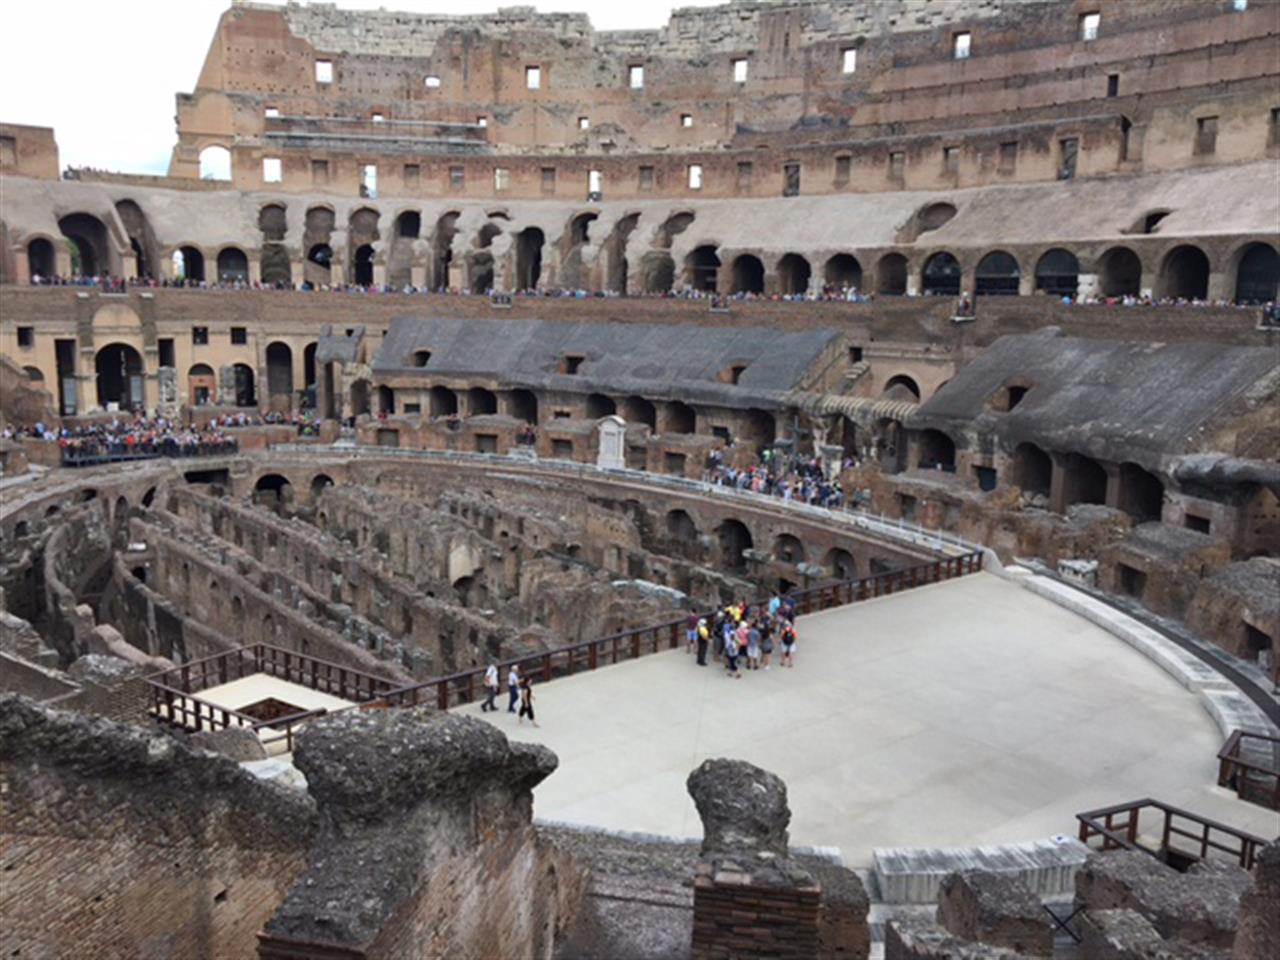 #leadingrelocal #Rome #Italy #Colosseum